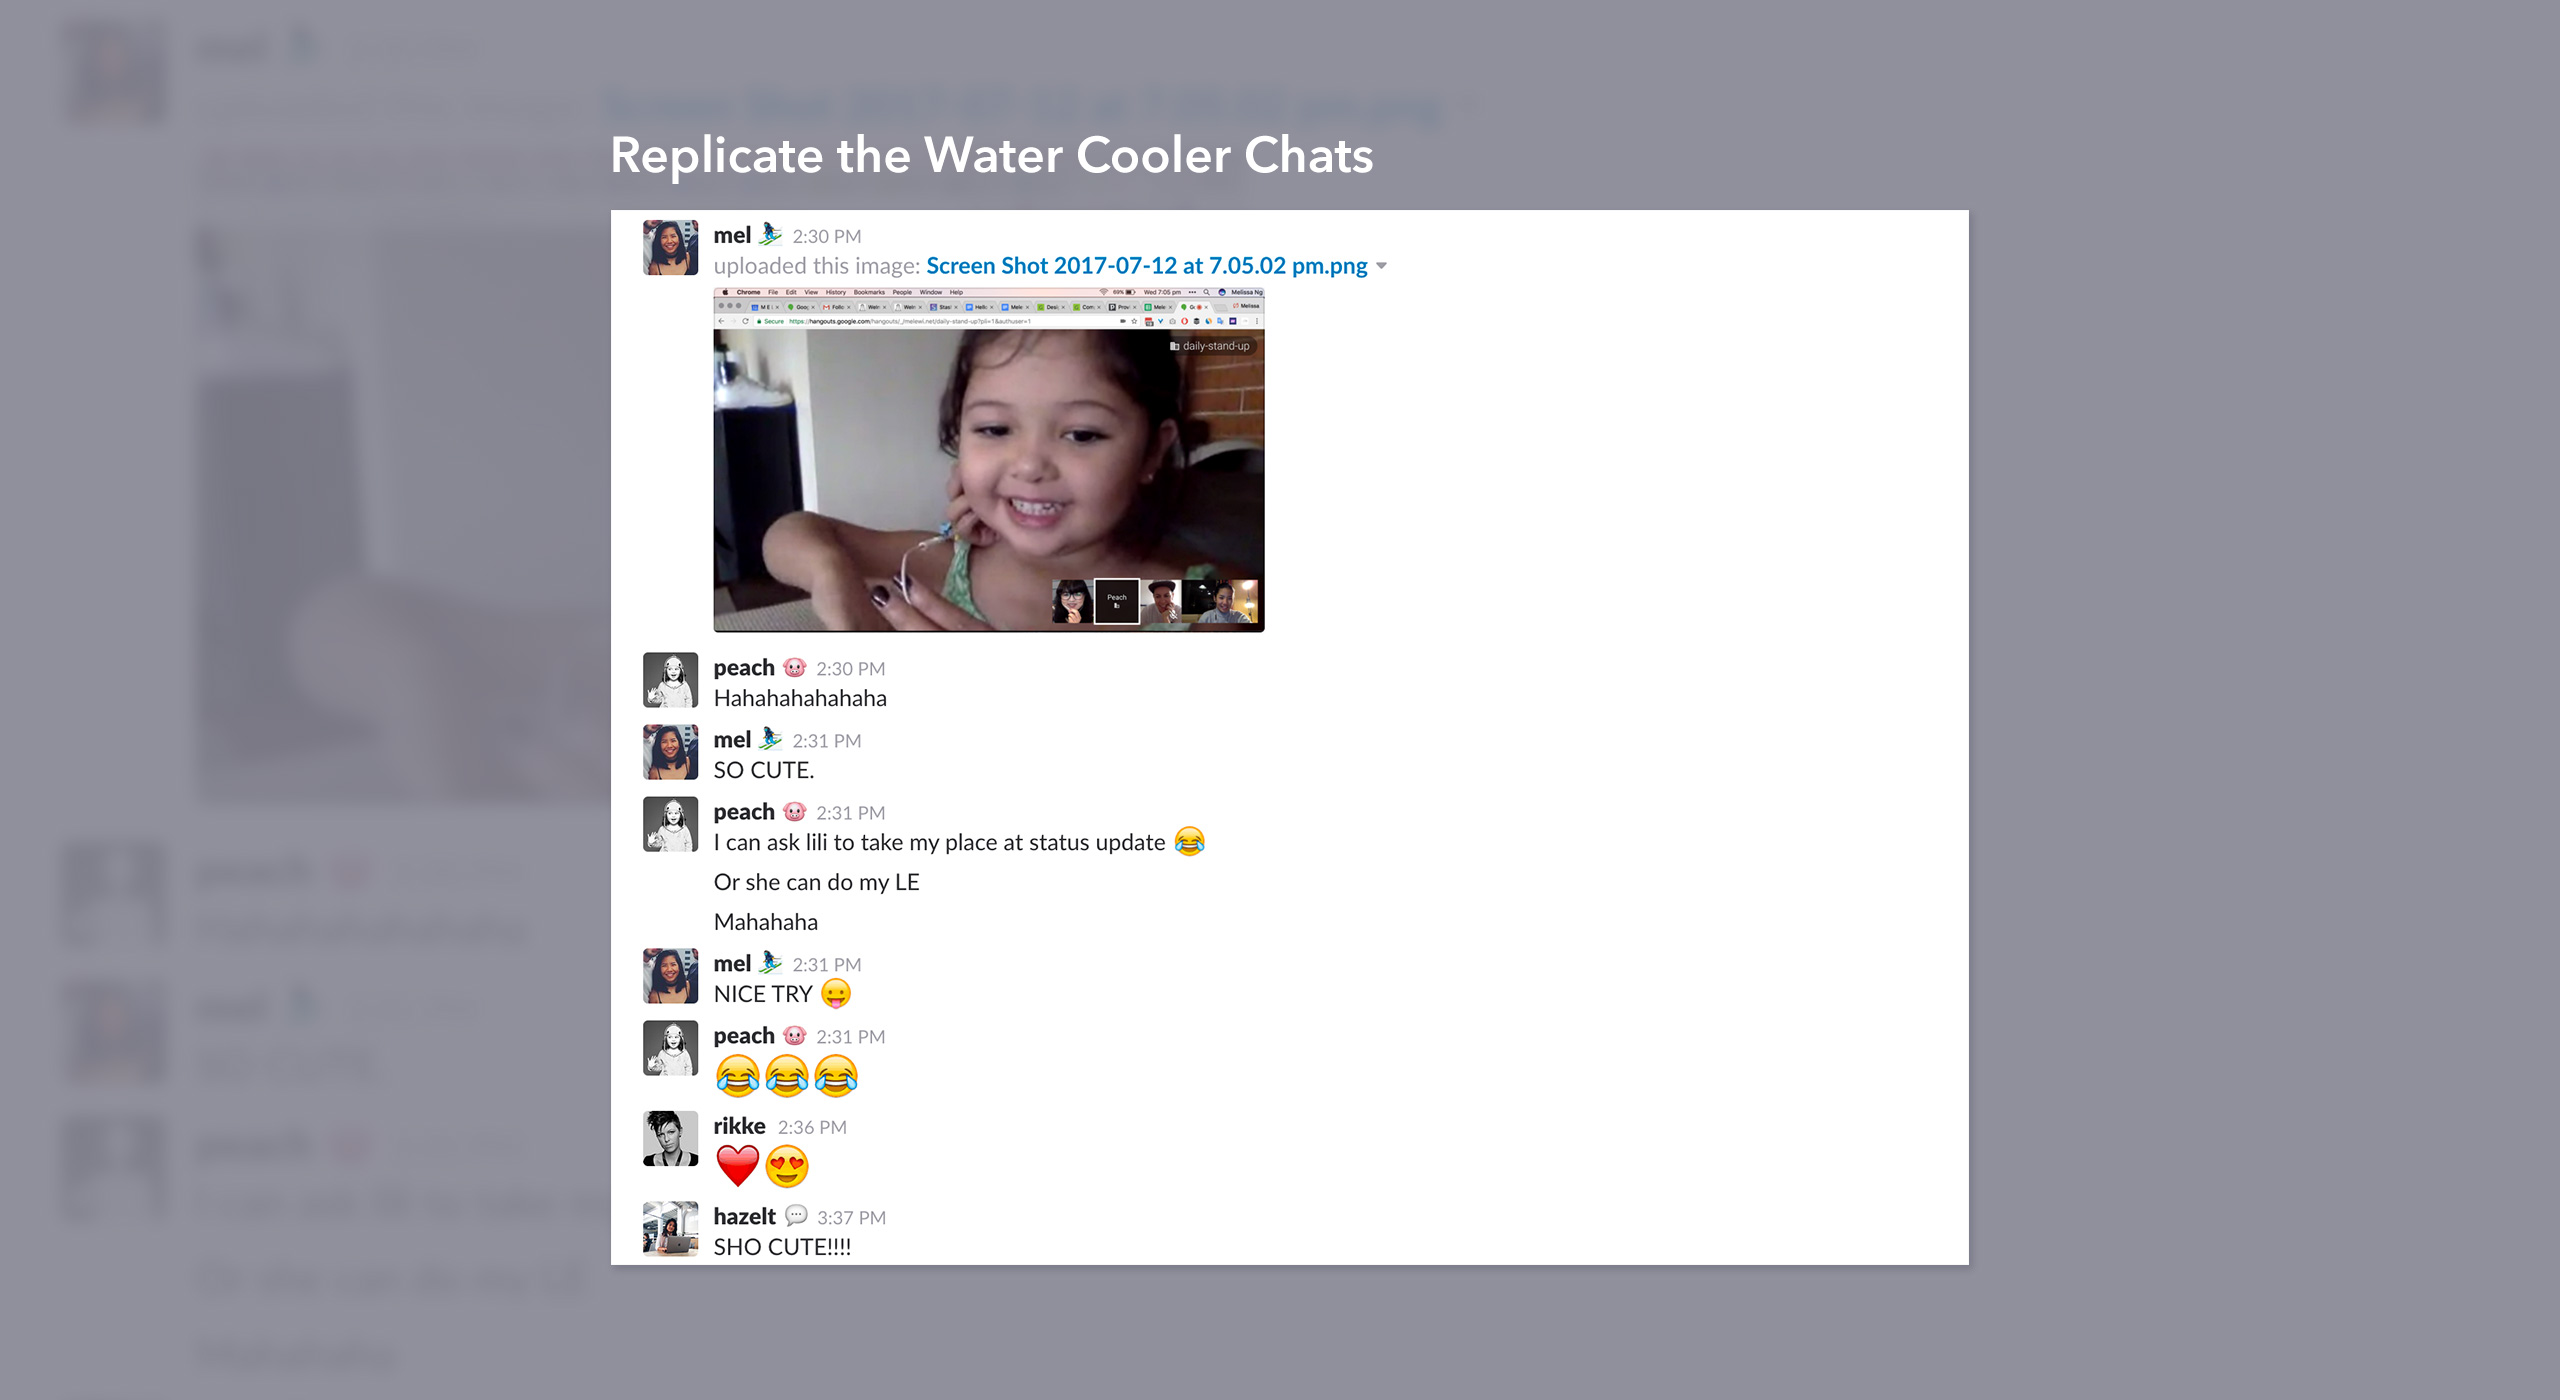 Replicate water cooler chats